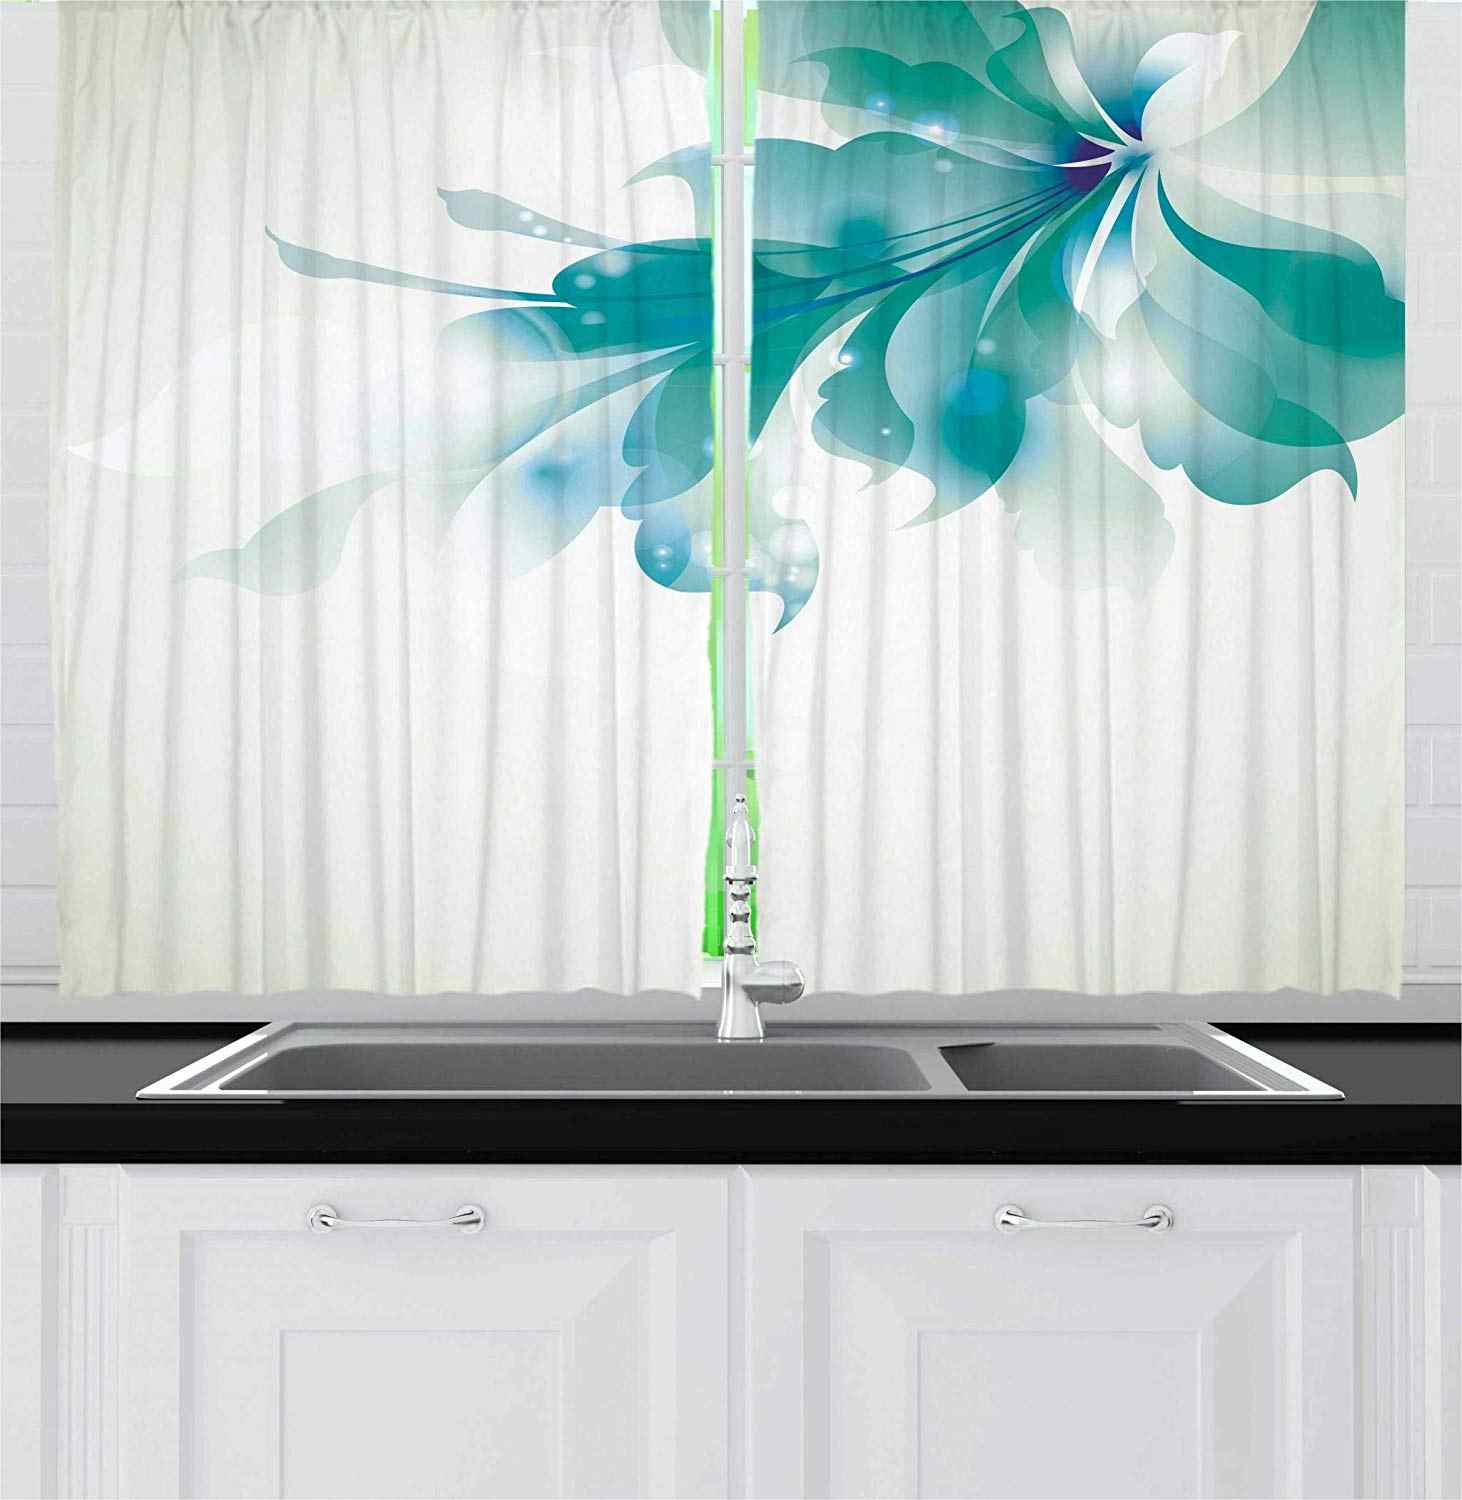 Abstract Blackout Curtains Big Single Beautiful Abstract Blue Shades Ombre Flowers Artwork Window Drapes For Living Room